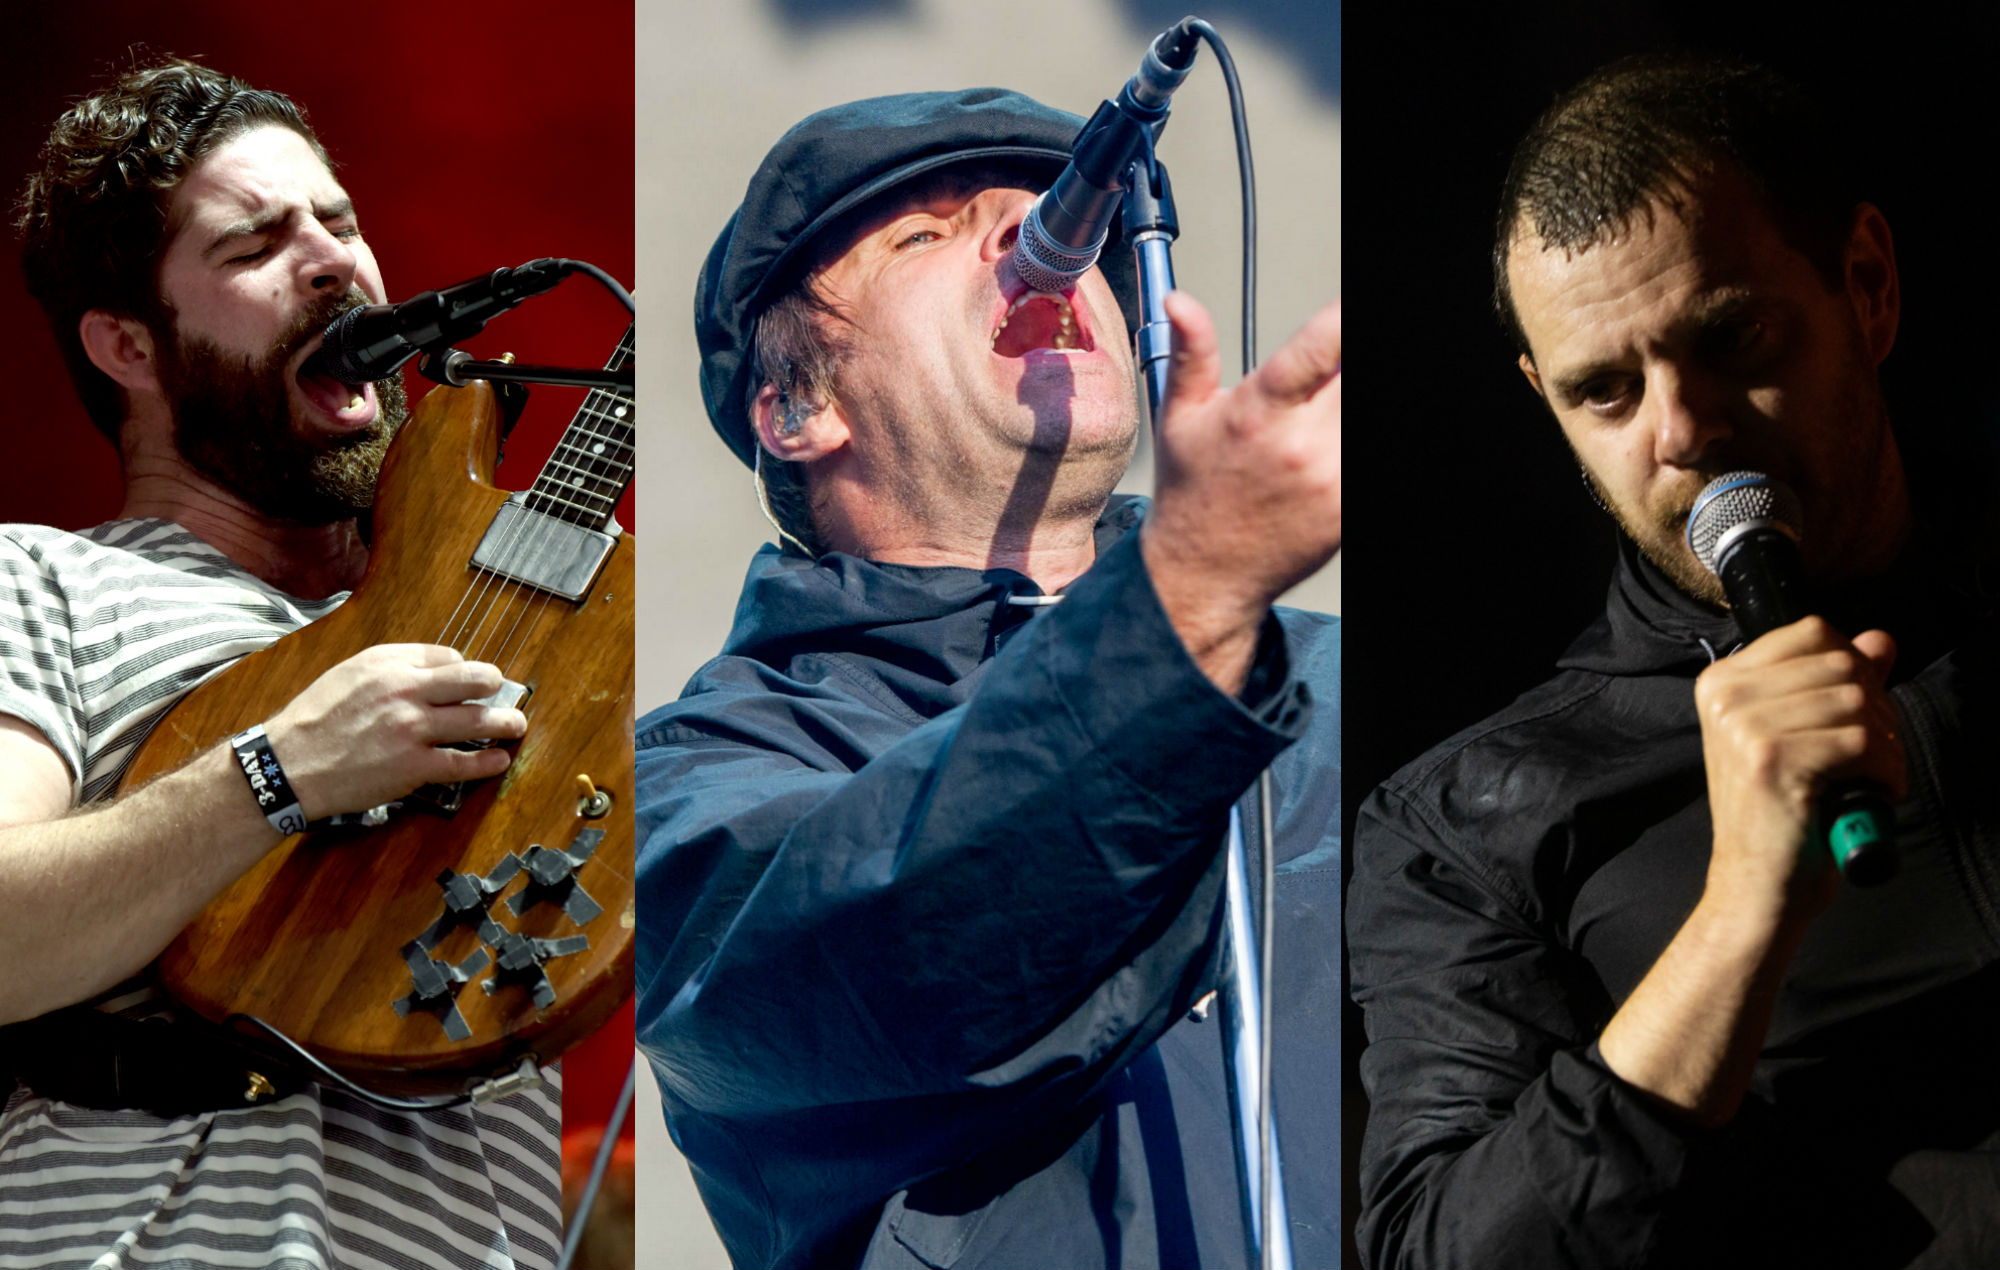 Foals, Liam Gallagher and The Streets lead Snowbombing 2020 line-up